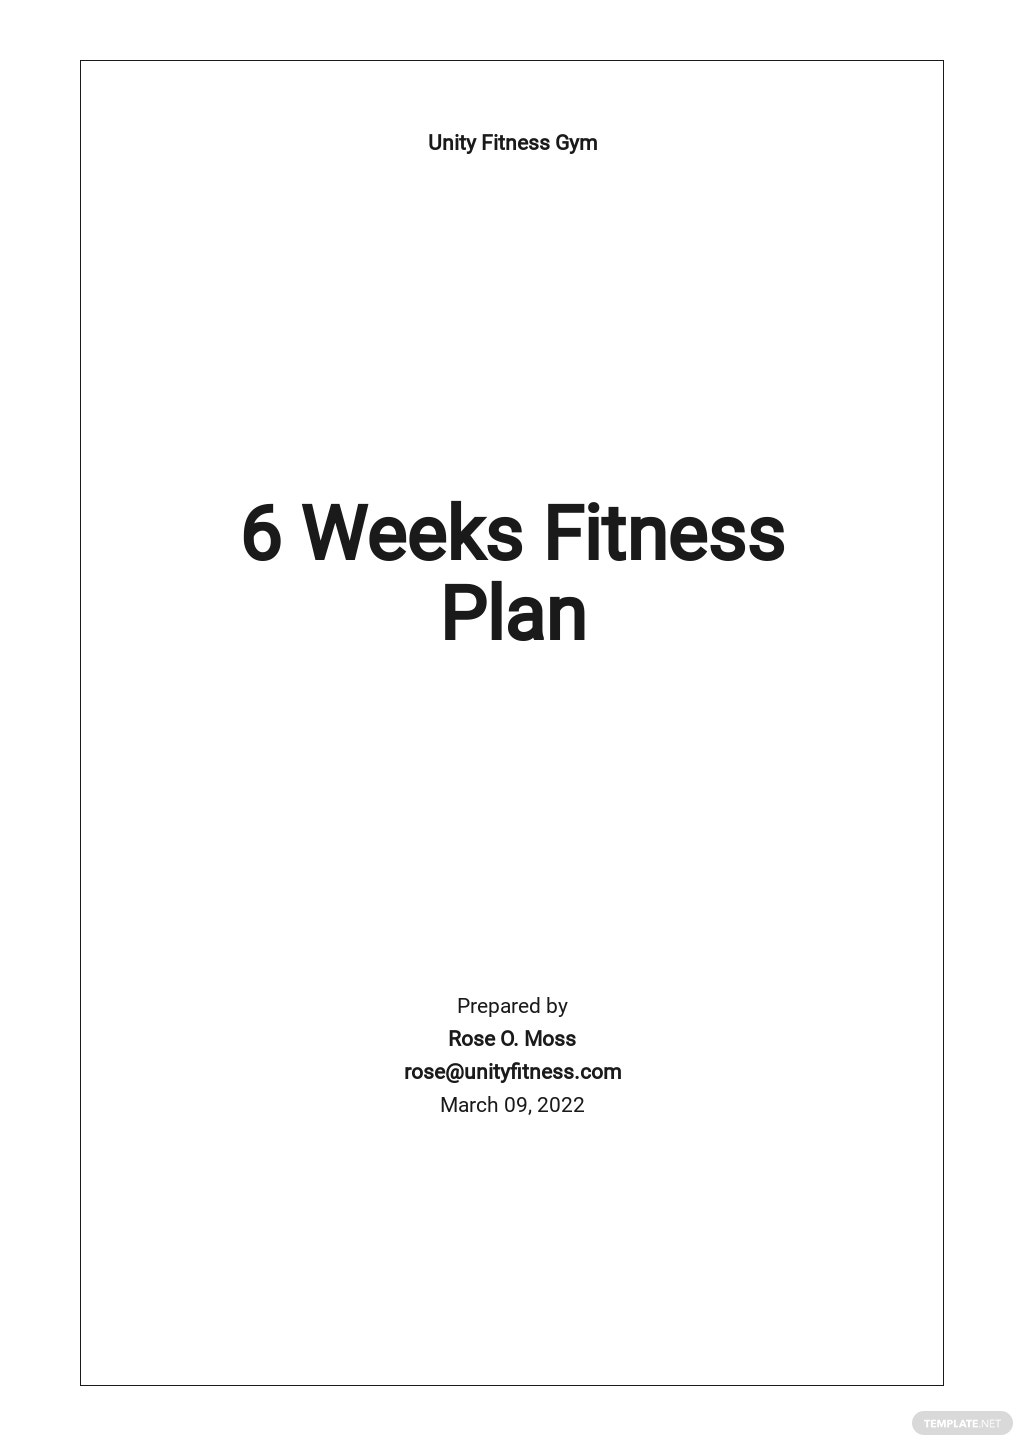 6 Week Fitness Plan Template